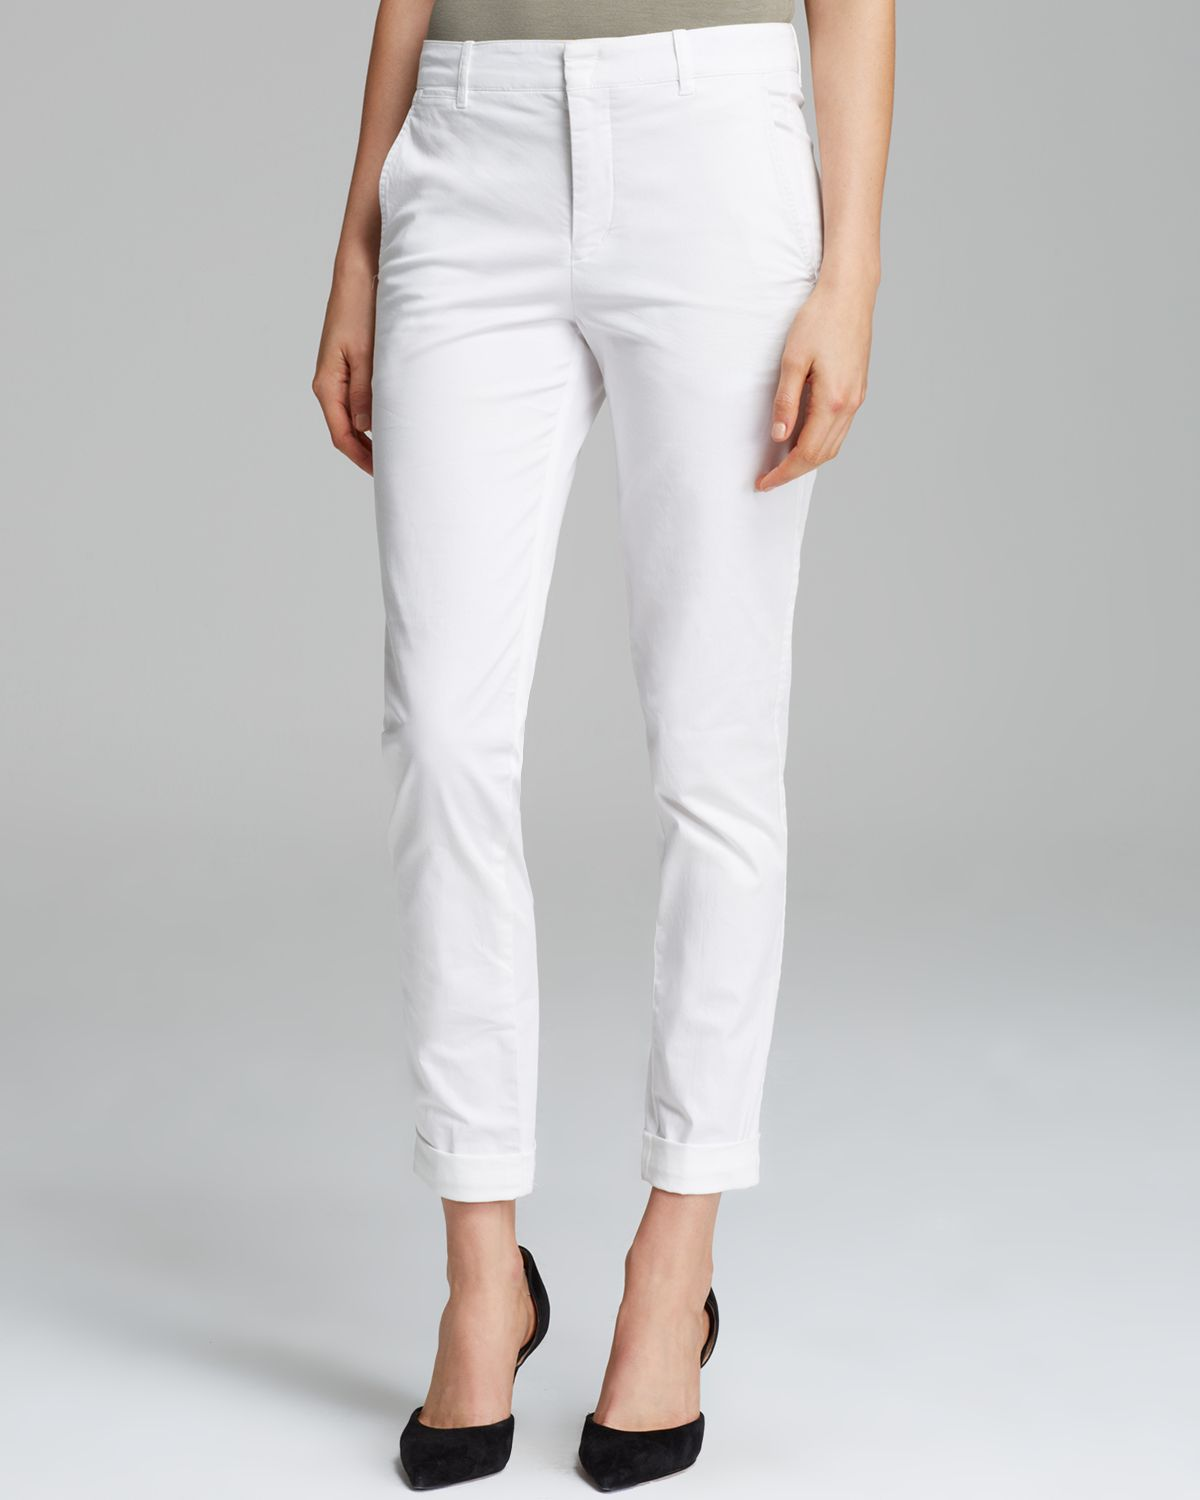 Beautiful White Pants For Women 2017